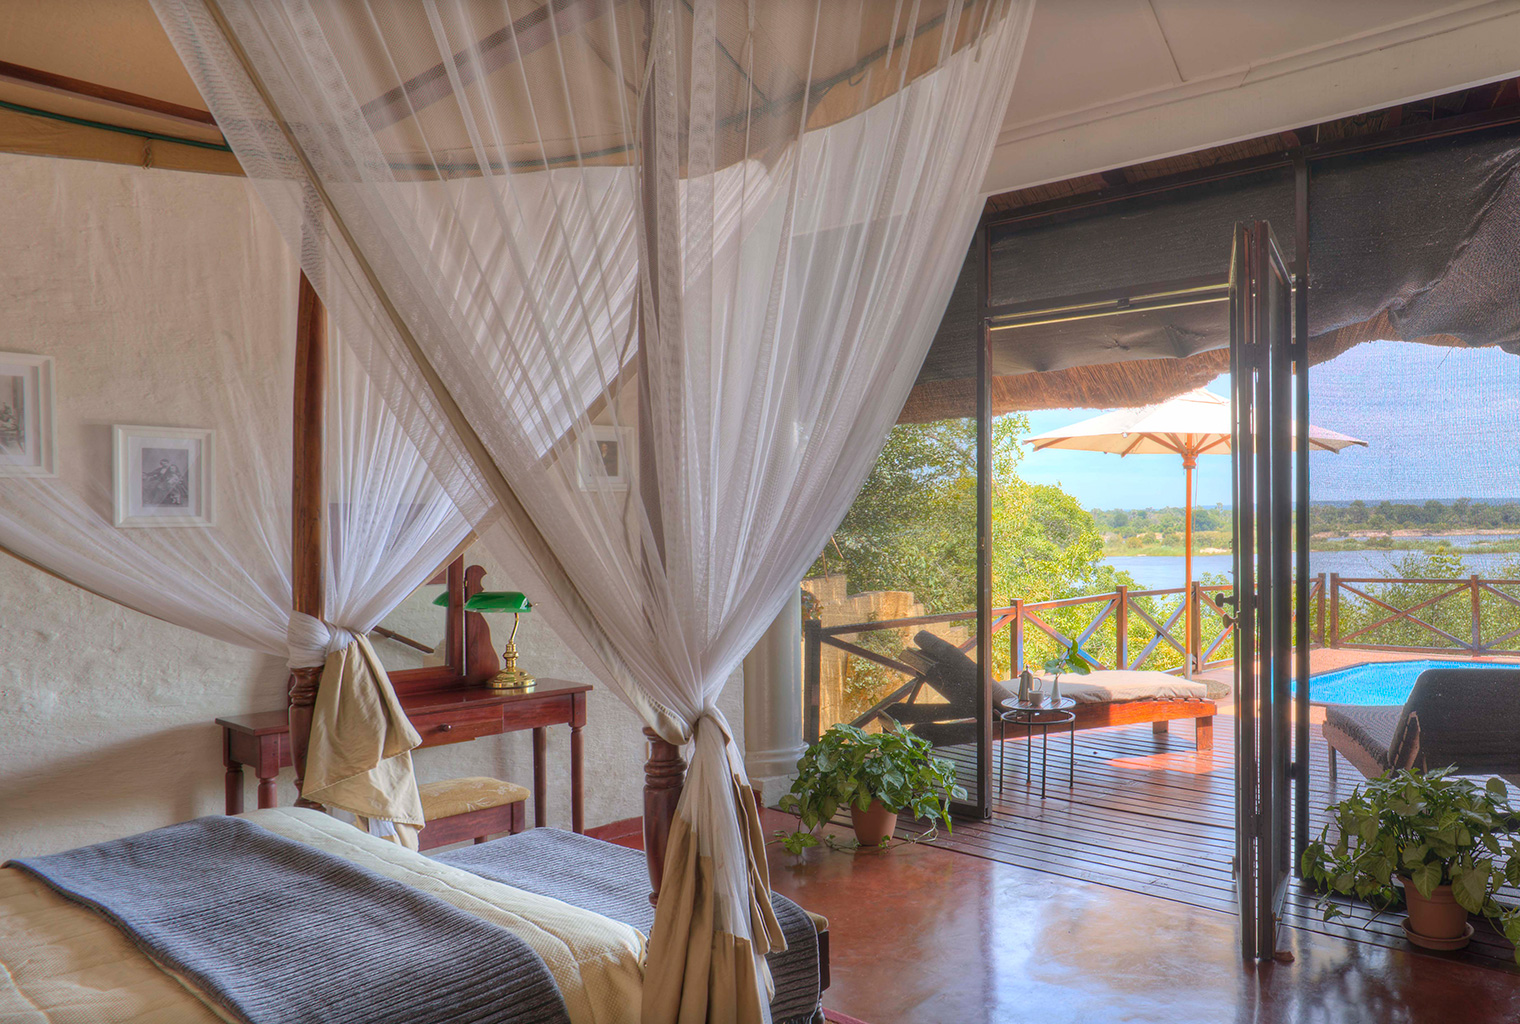 The-River-Club-Lodge-Zambia-bedroom